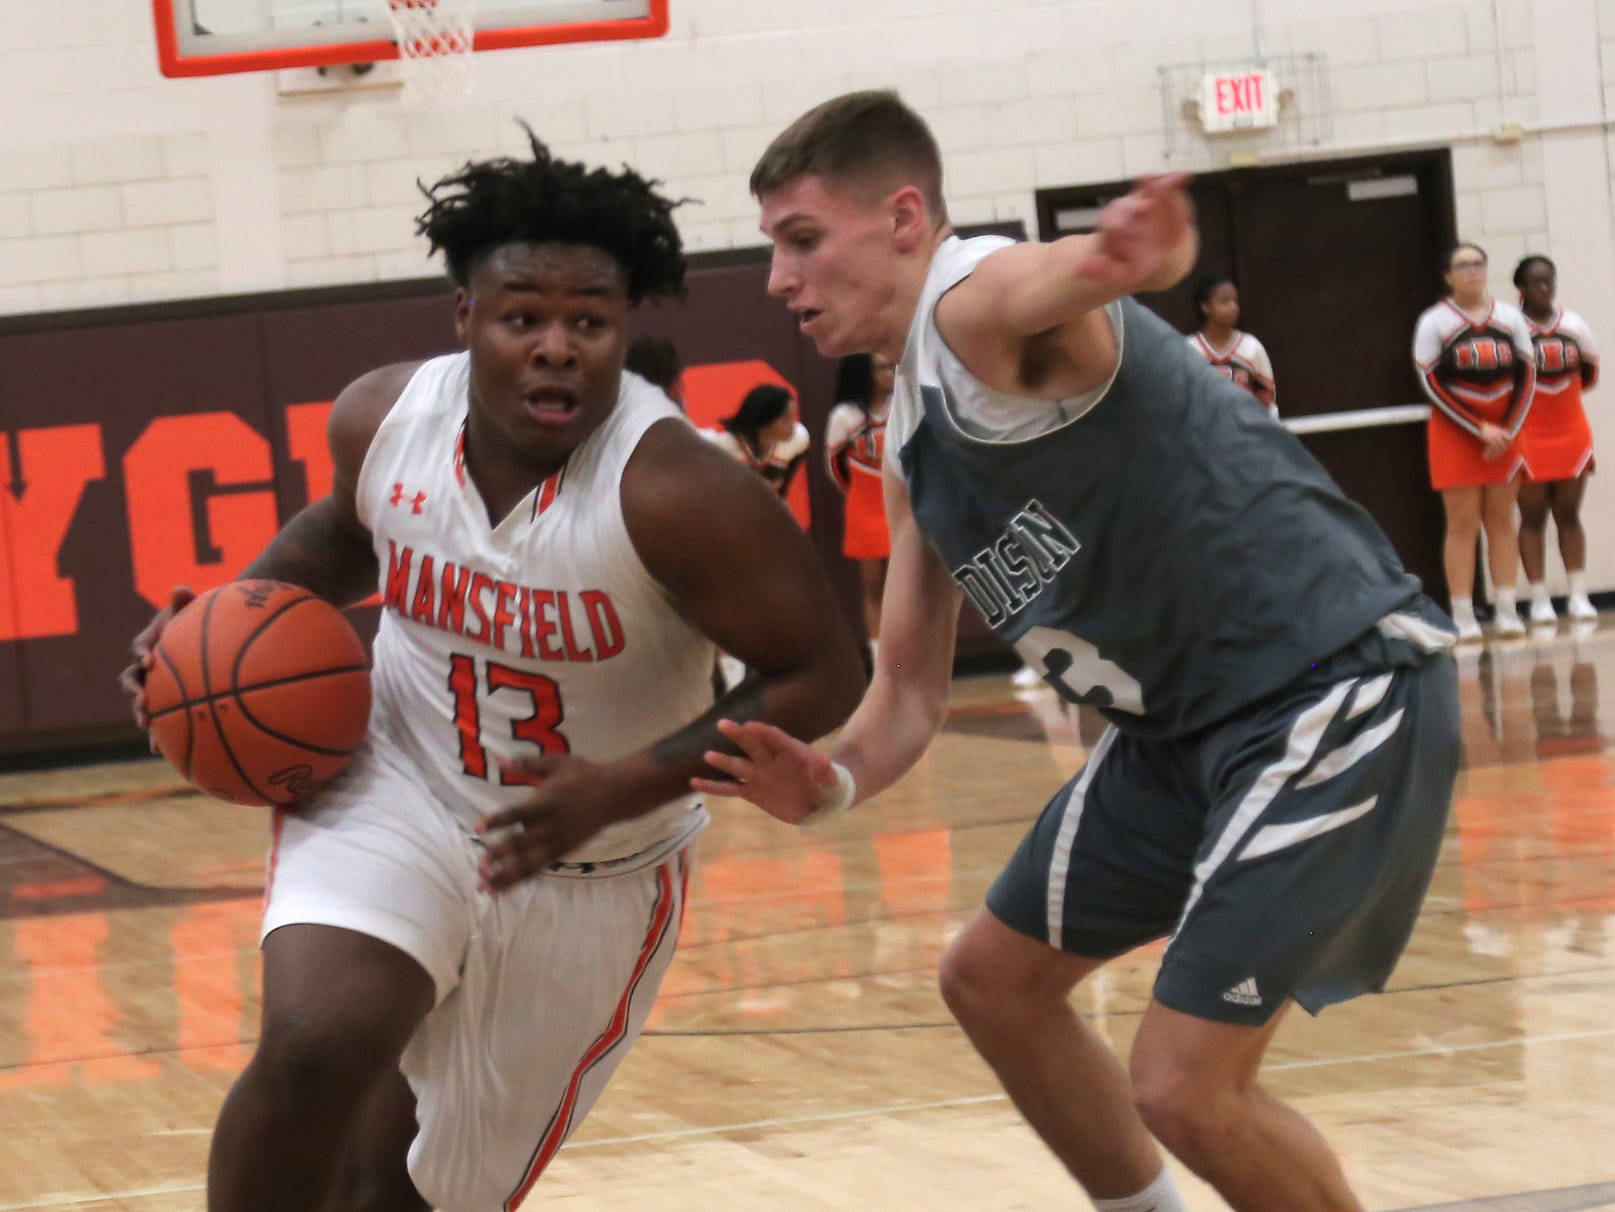 Mansfield Senior's Quan Hilory dribbles the ball against Madison's Dylan Metz at Malabar Middle School on Friday Night.